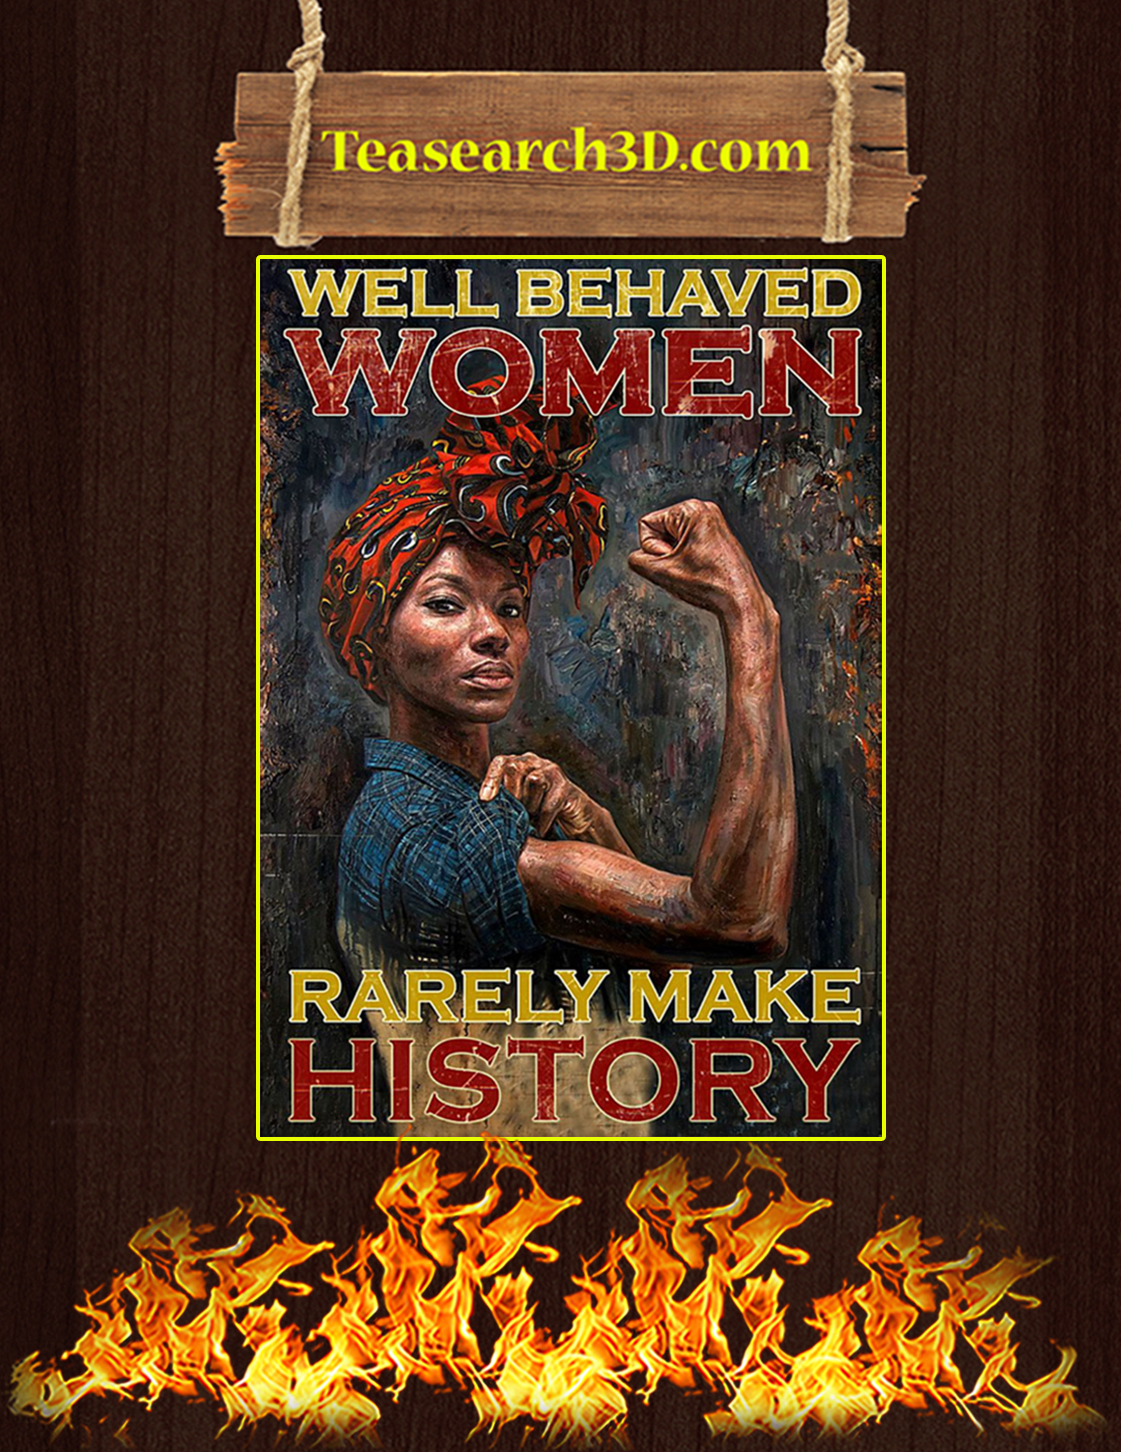 Well behaved black women rarely make history poster A3